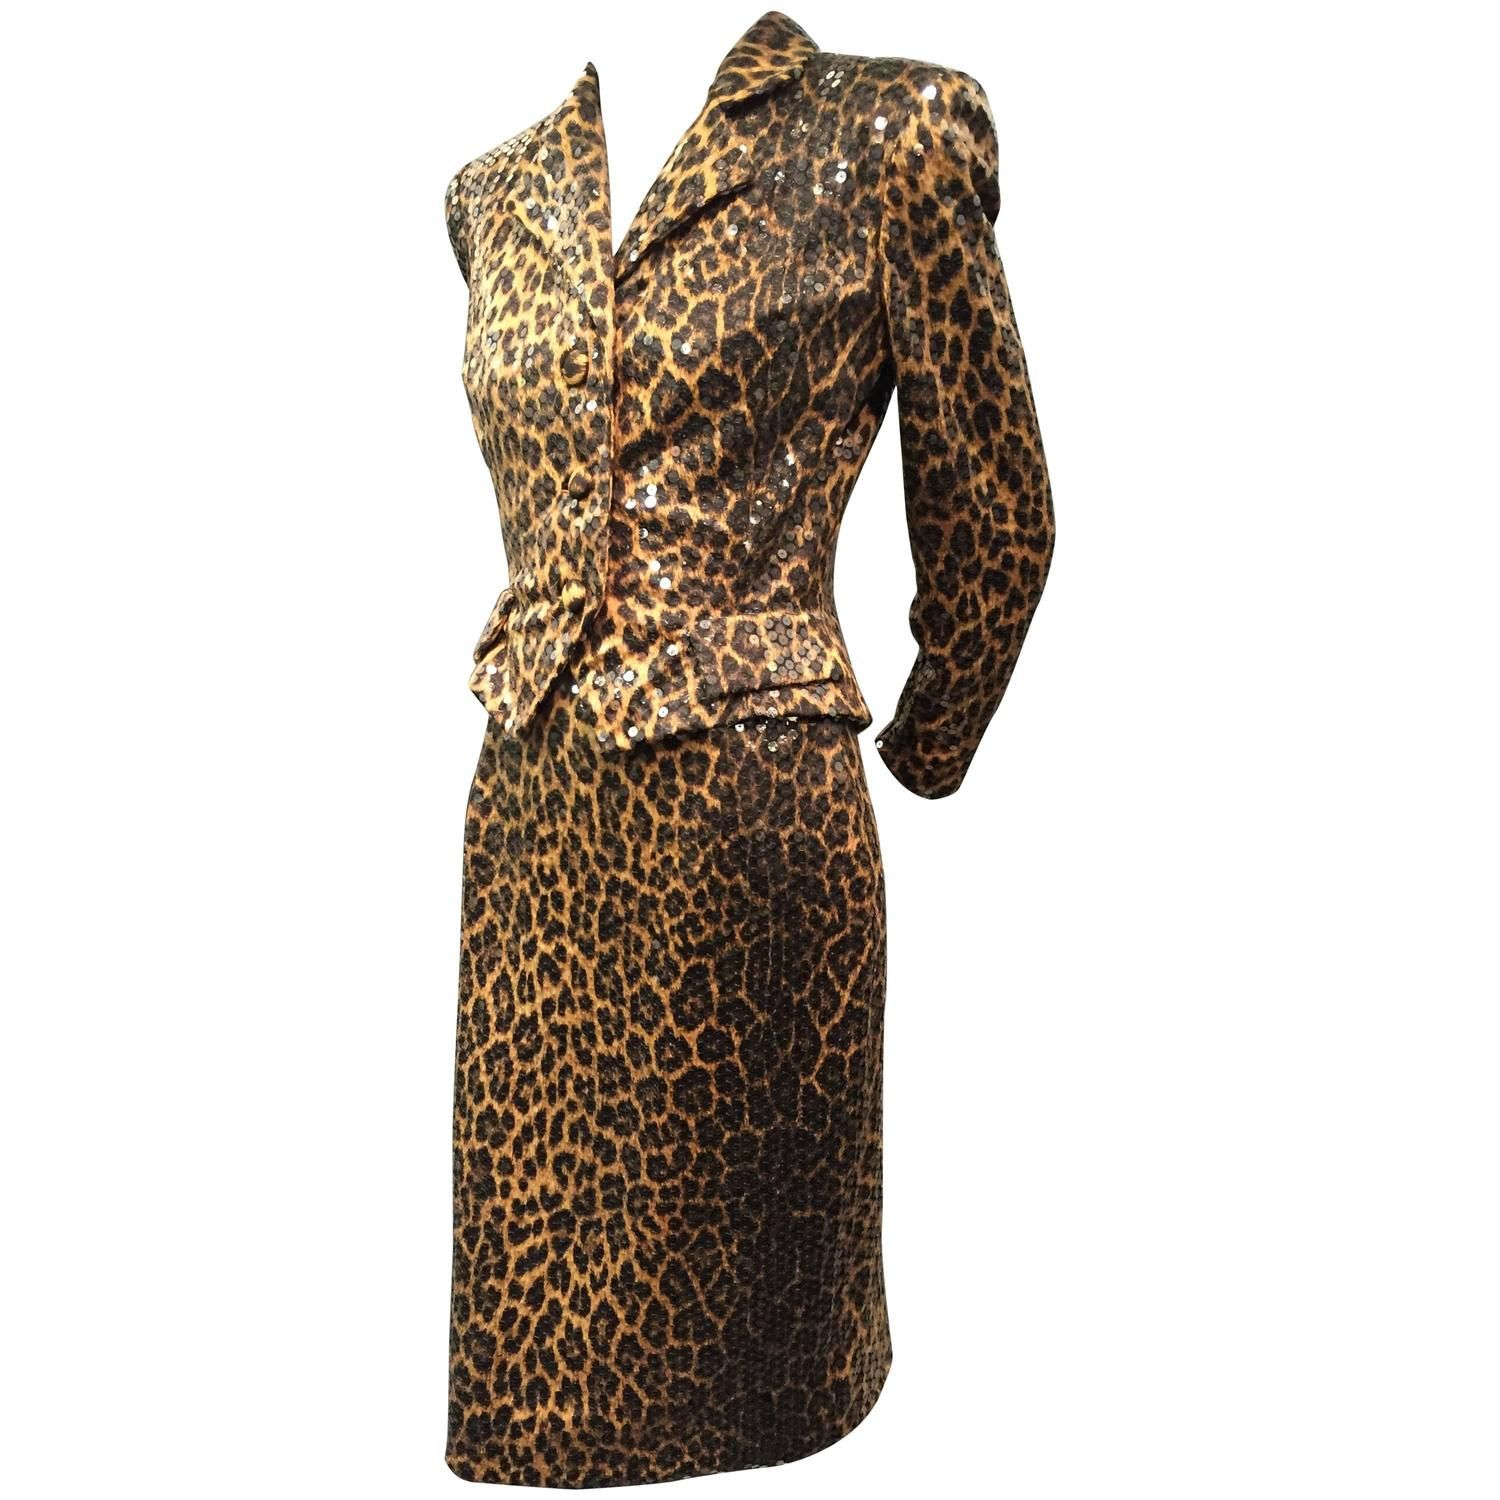 1980s Travilla Leopard Print Silk Skirt Suit Entirely Covered in Clear Sequins…